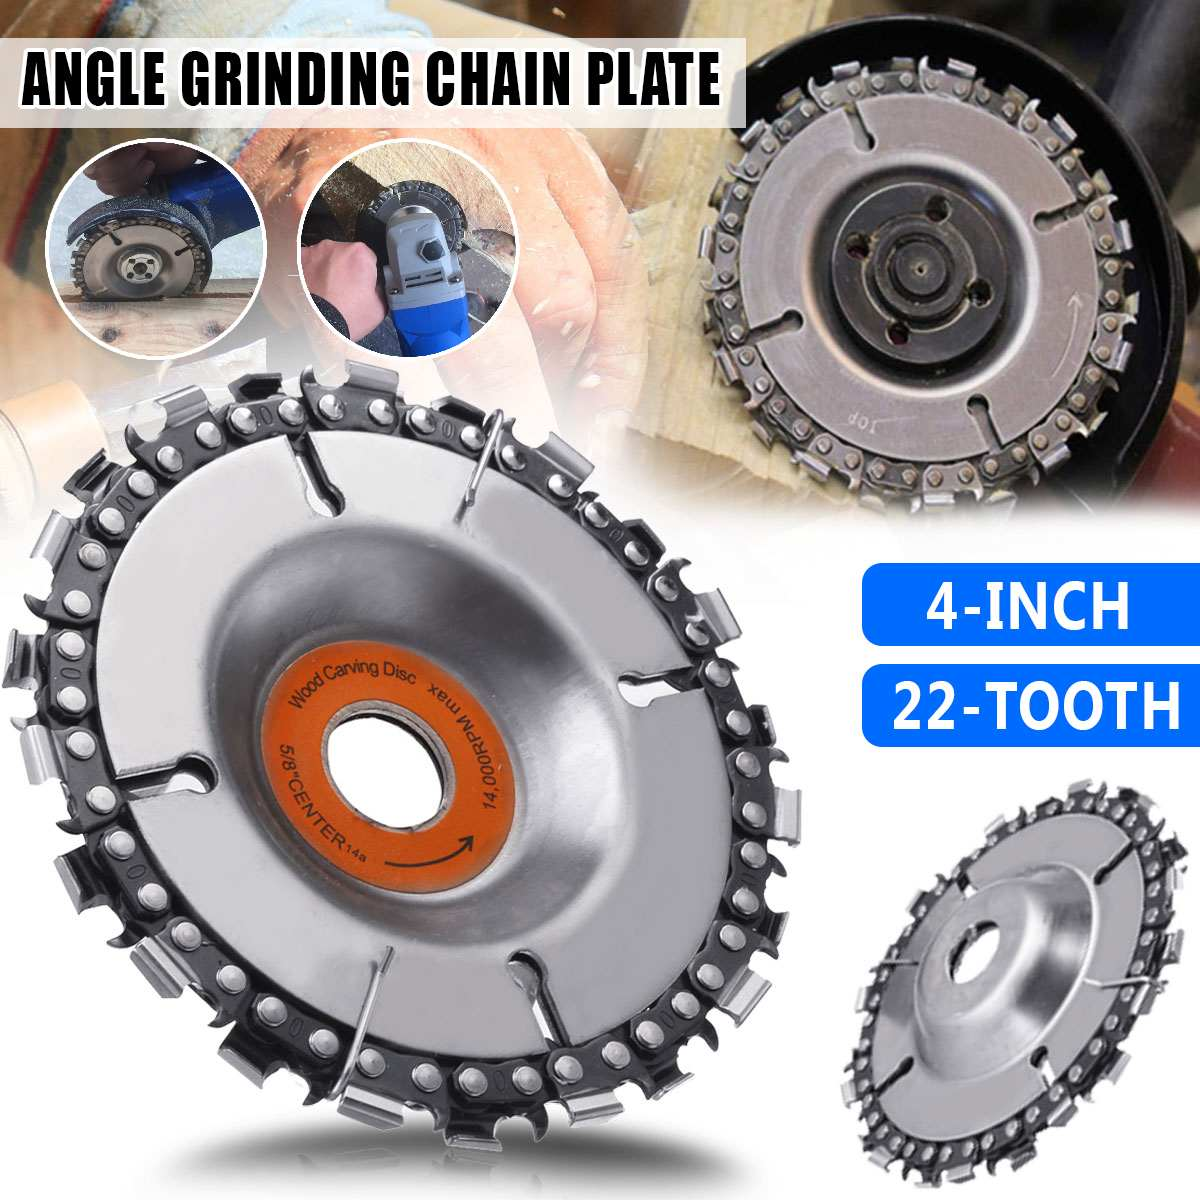 Durable 4/5 Inch Wood Carving Disc <font><b>Woodworking</b></font> Chain Grinder Chain <font><b>Saws</b></font> Disc Chain Plate Tool <font><b>for</b></font> 100/115/125MM Angle Grinding image